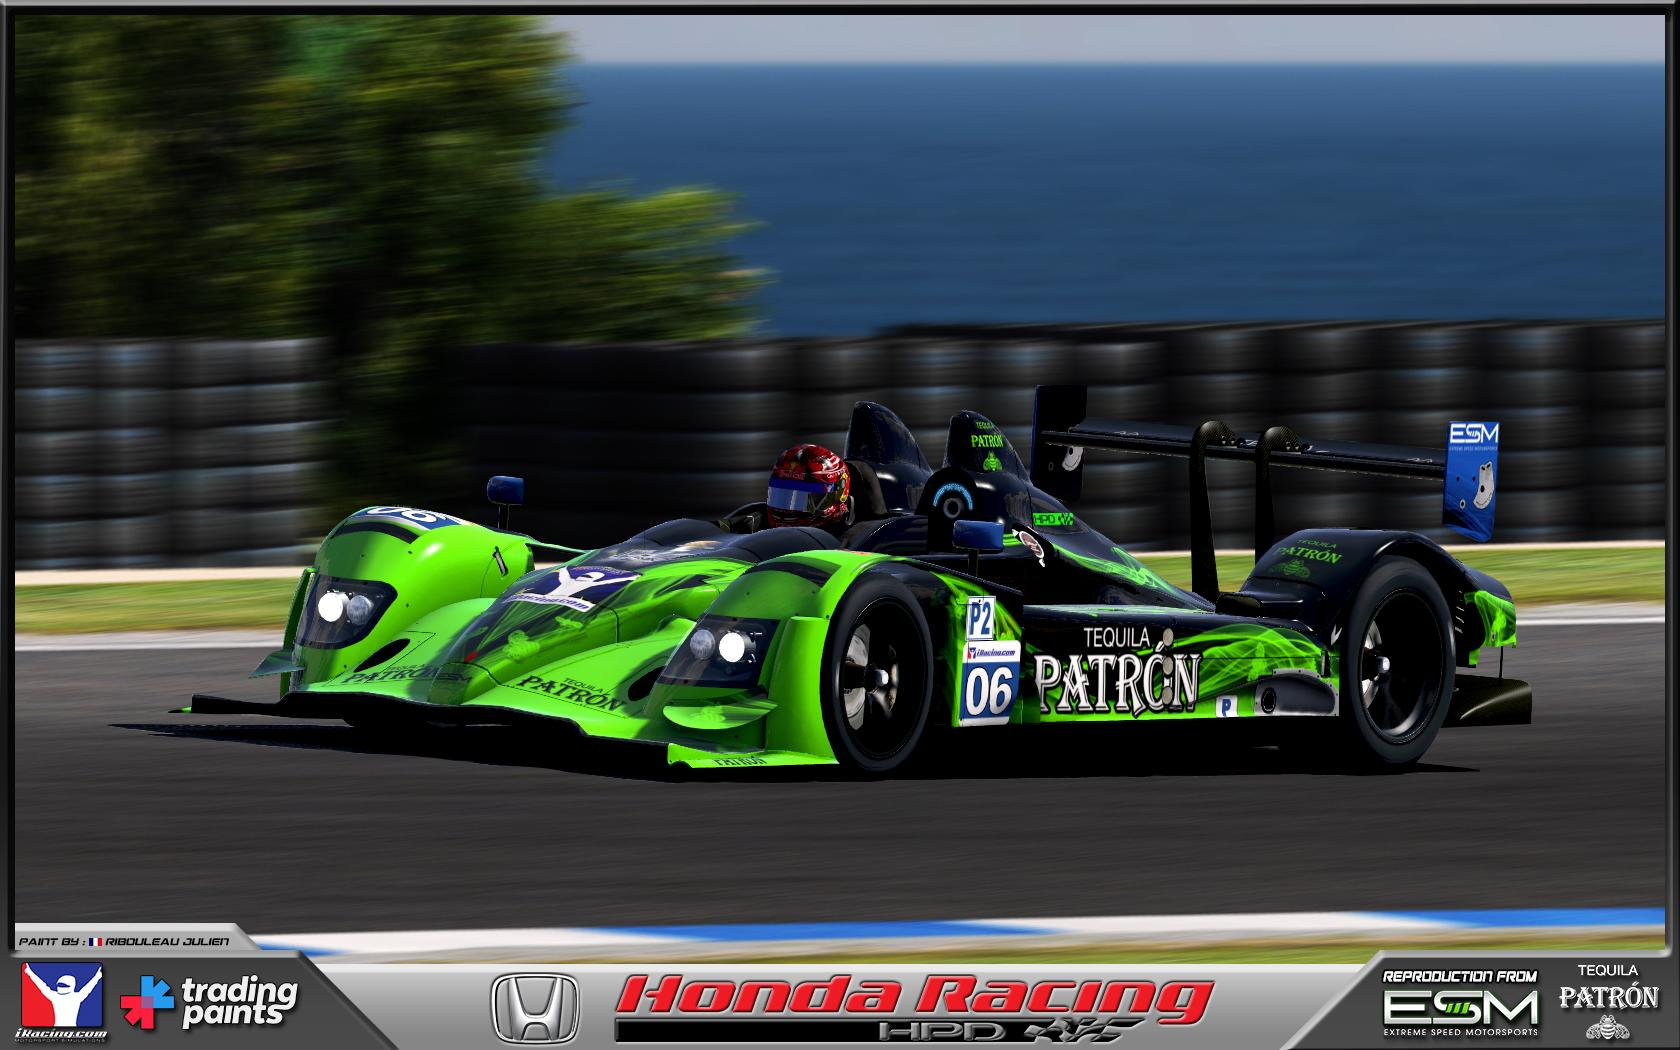 Esm tequila patron 2014 v2 by julien ribouleau trading